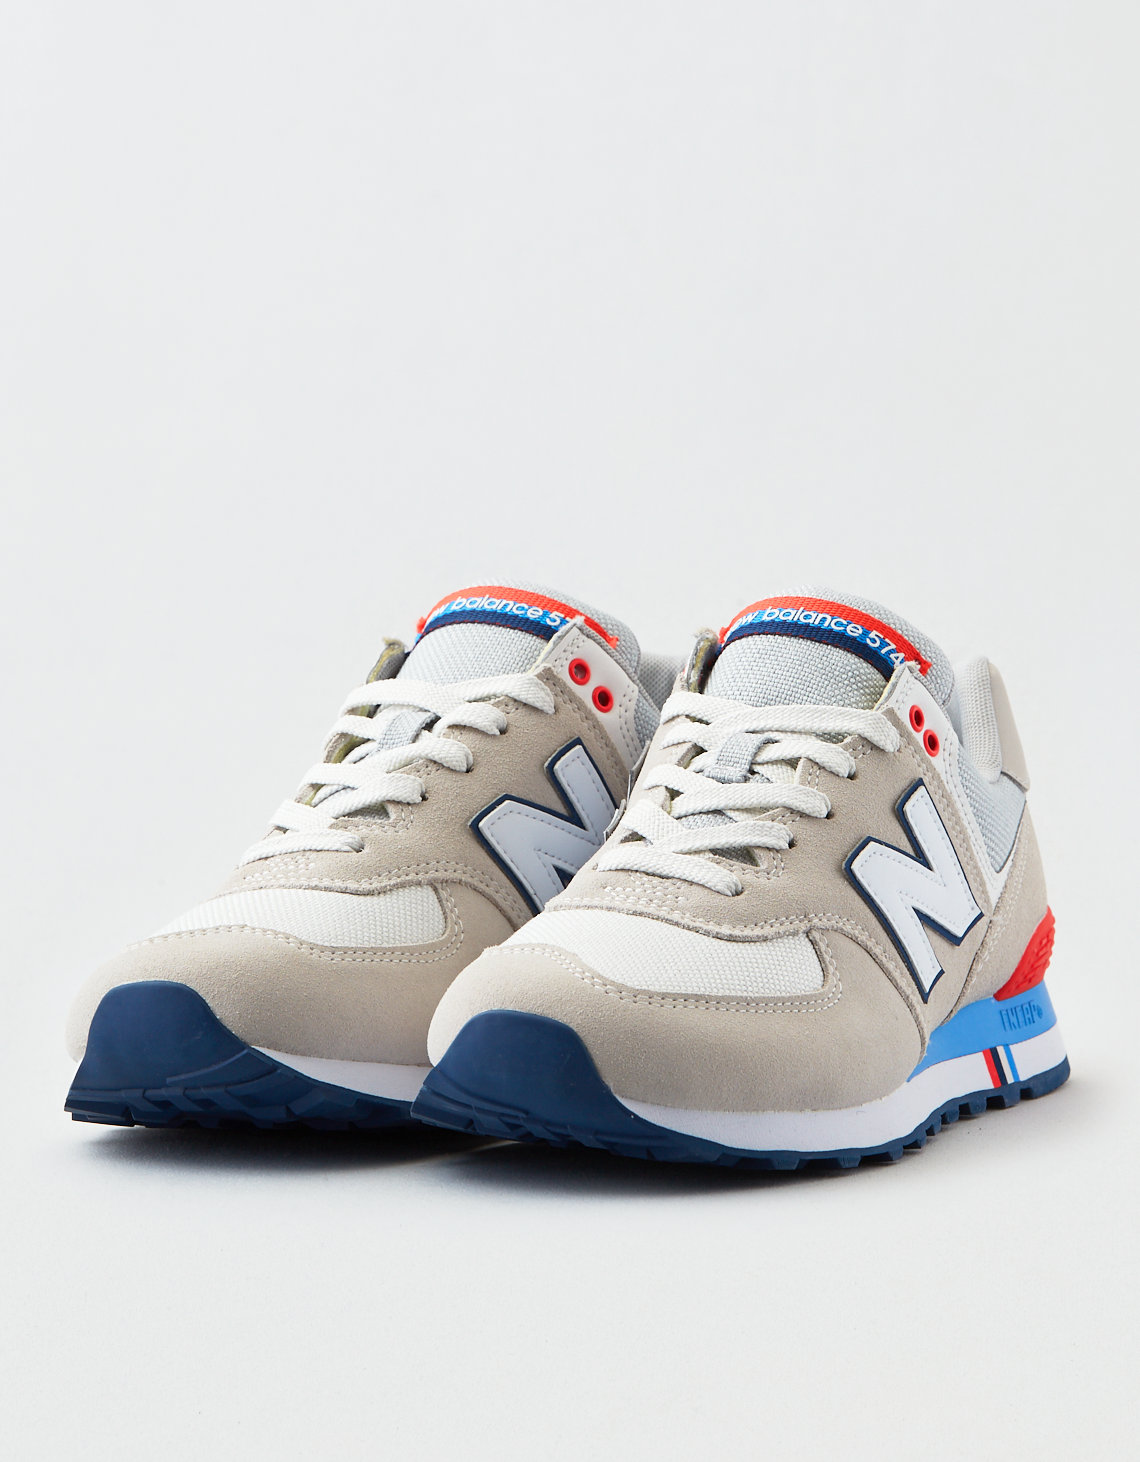 b6ce4ce9c0346 New Balance 574 Summer Shore Sneaker